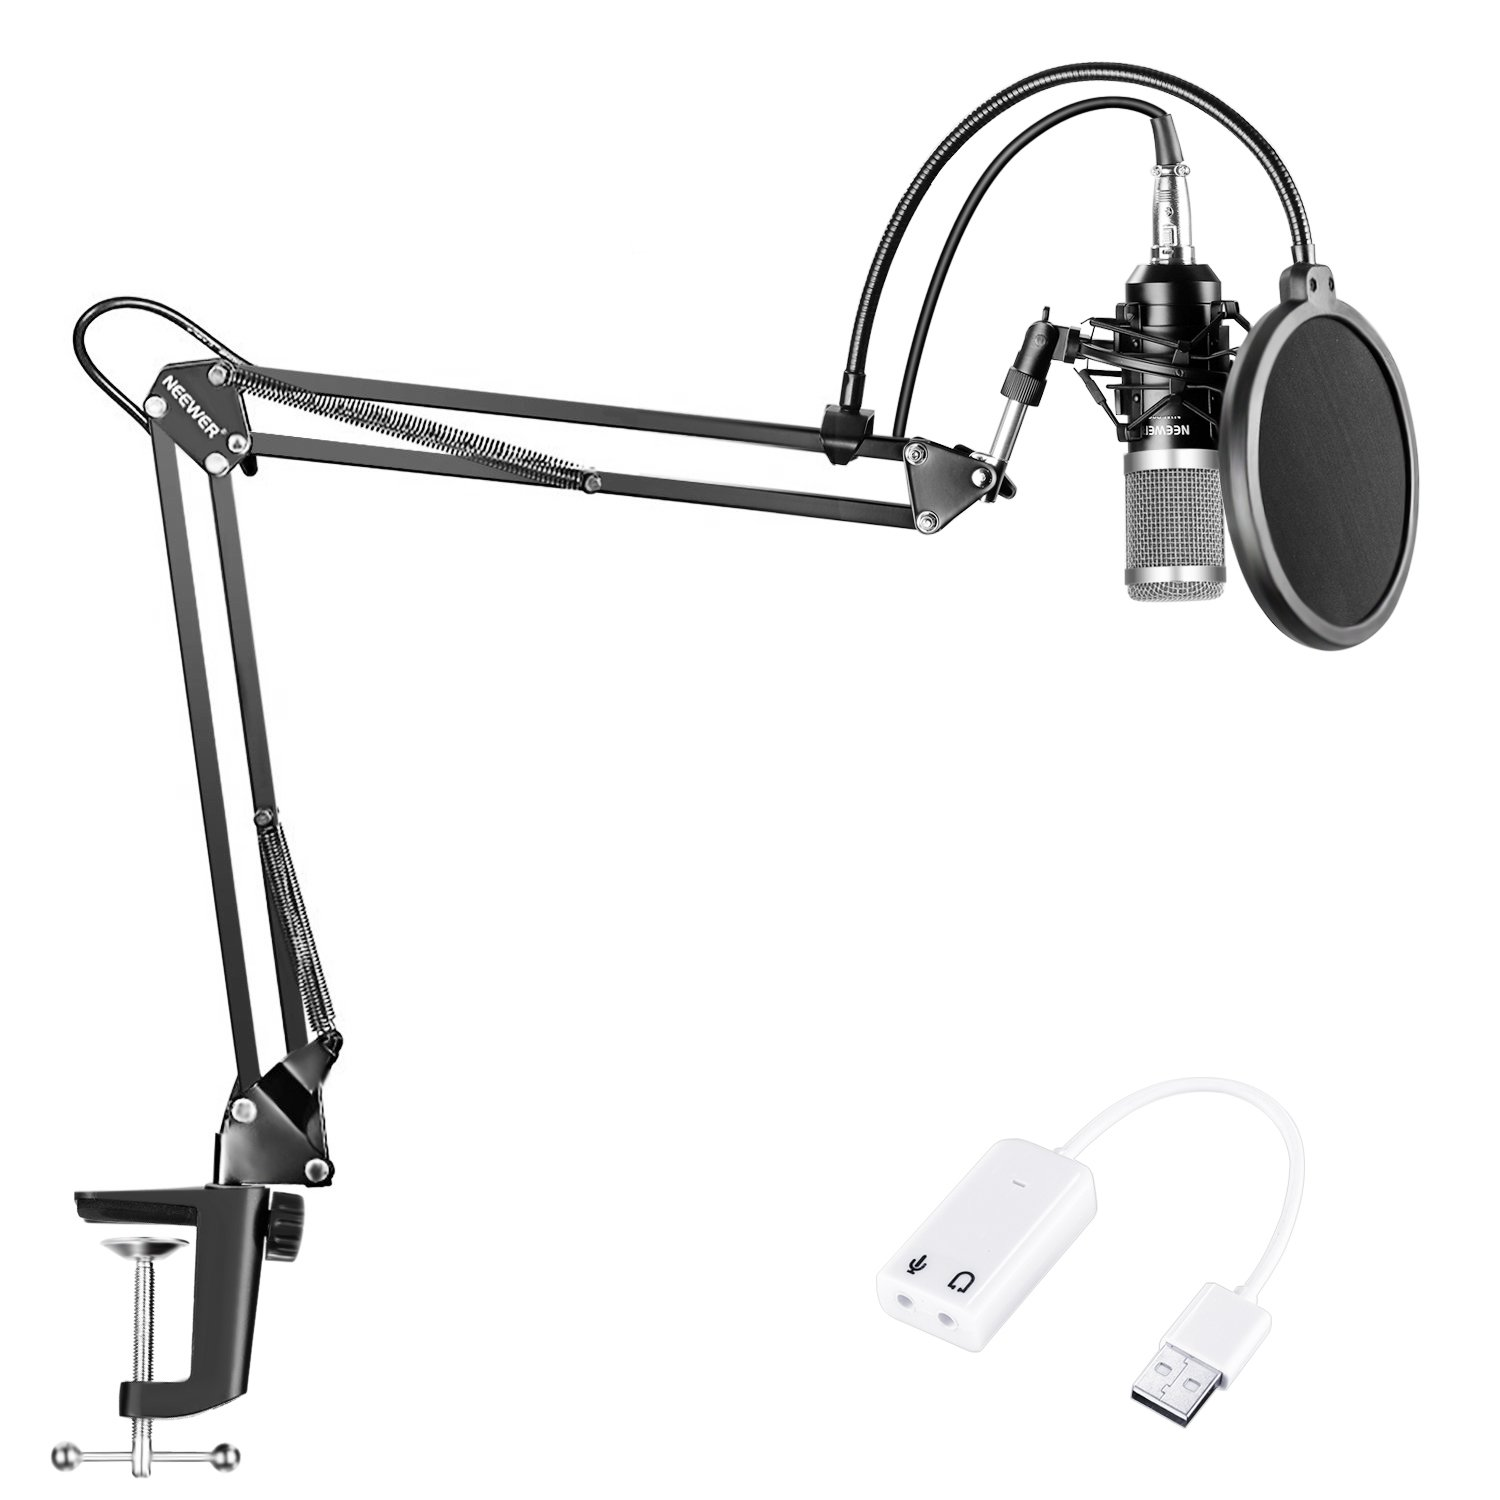 Neewer NW-800 Condenser Microphone (Black/Silver)Kit with USB Sound Card Adapter,Adjustable Suspension Scissor Arm Stand,Shock Mount,Pop Filter for Studio Recording Broadcast YouTube Live Periscop by Neewer